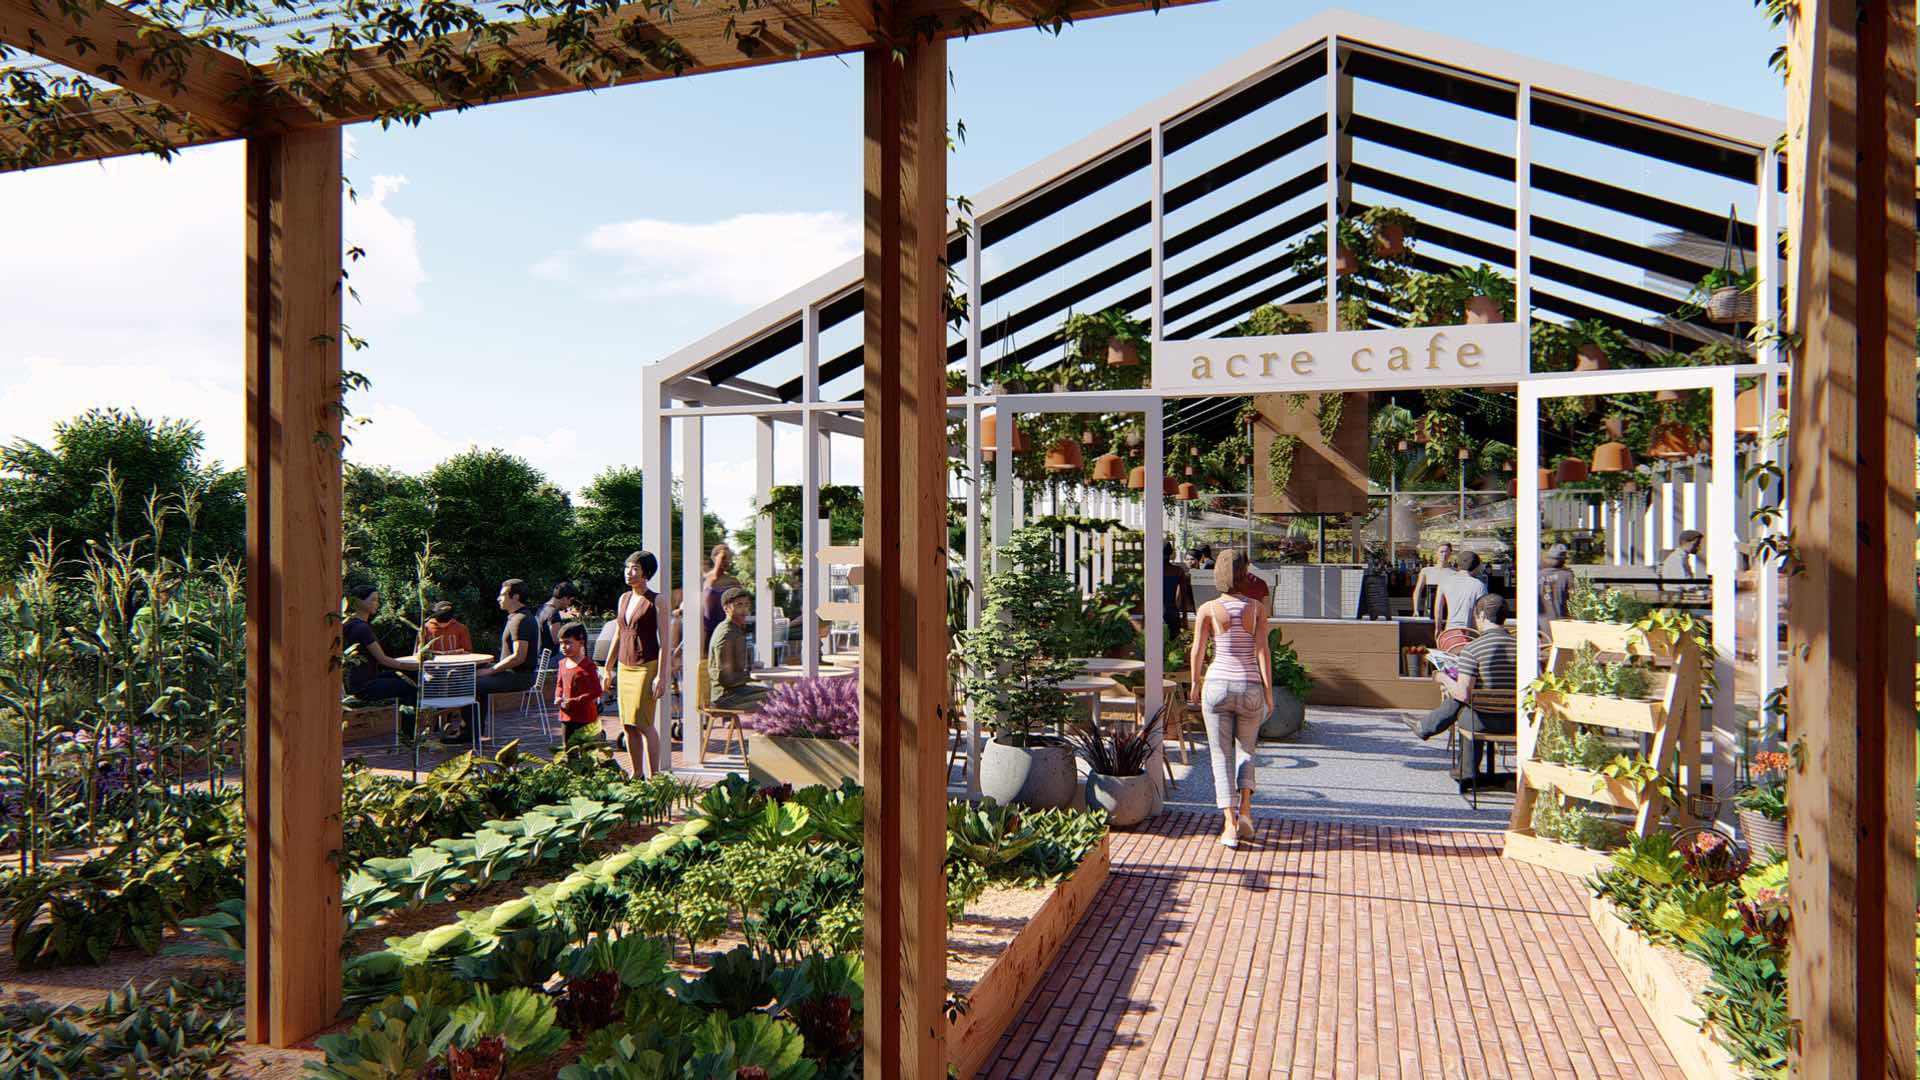 This Is What Melbourne's Huge Soon-to-Open Urban Rooftop Farm Will Look Like